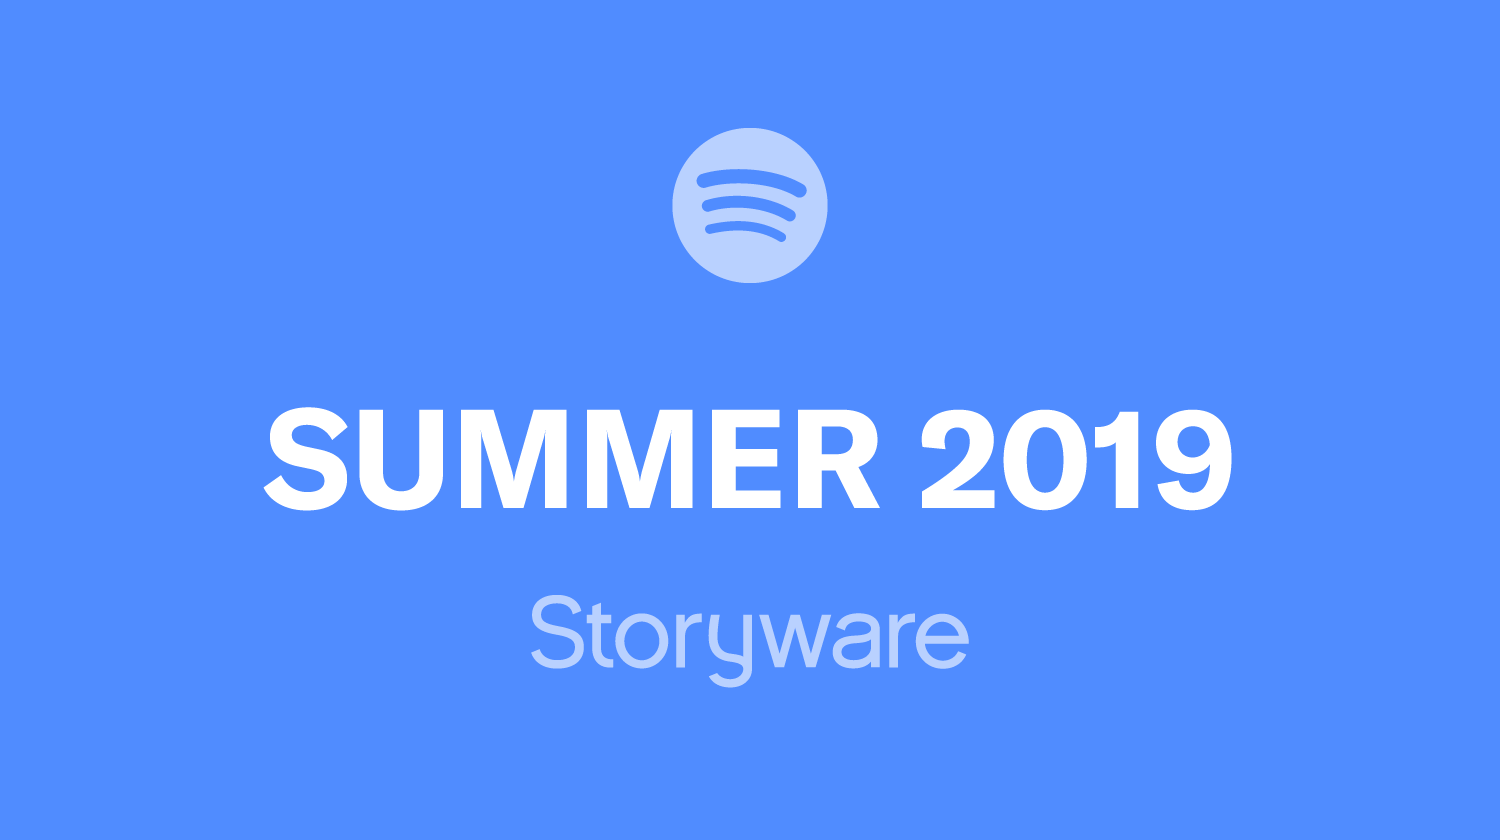 Storyware Summer 2019 Playlist